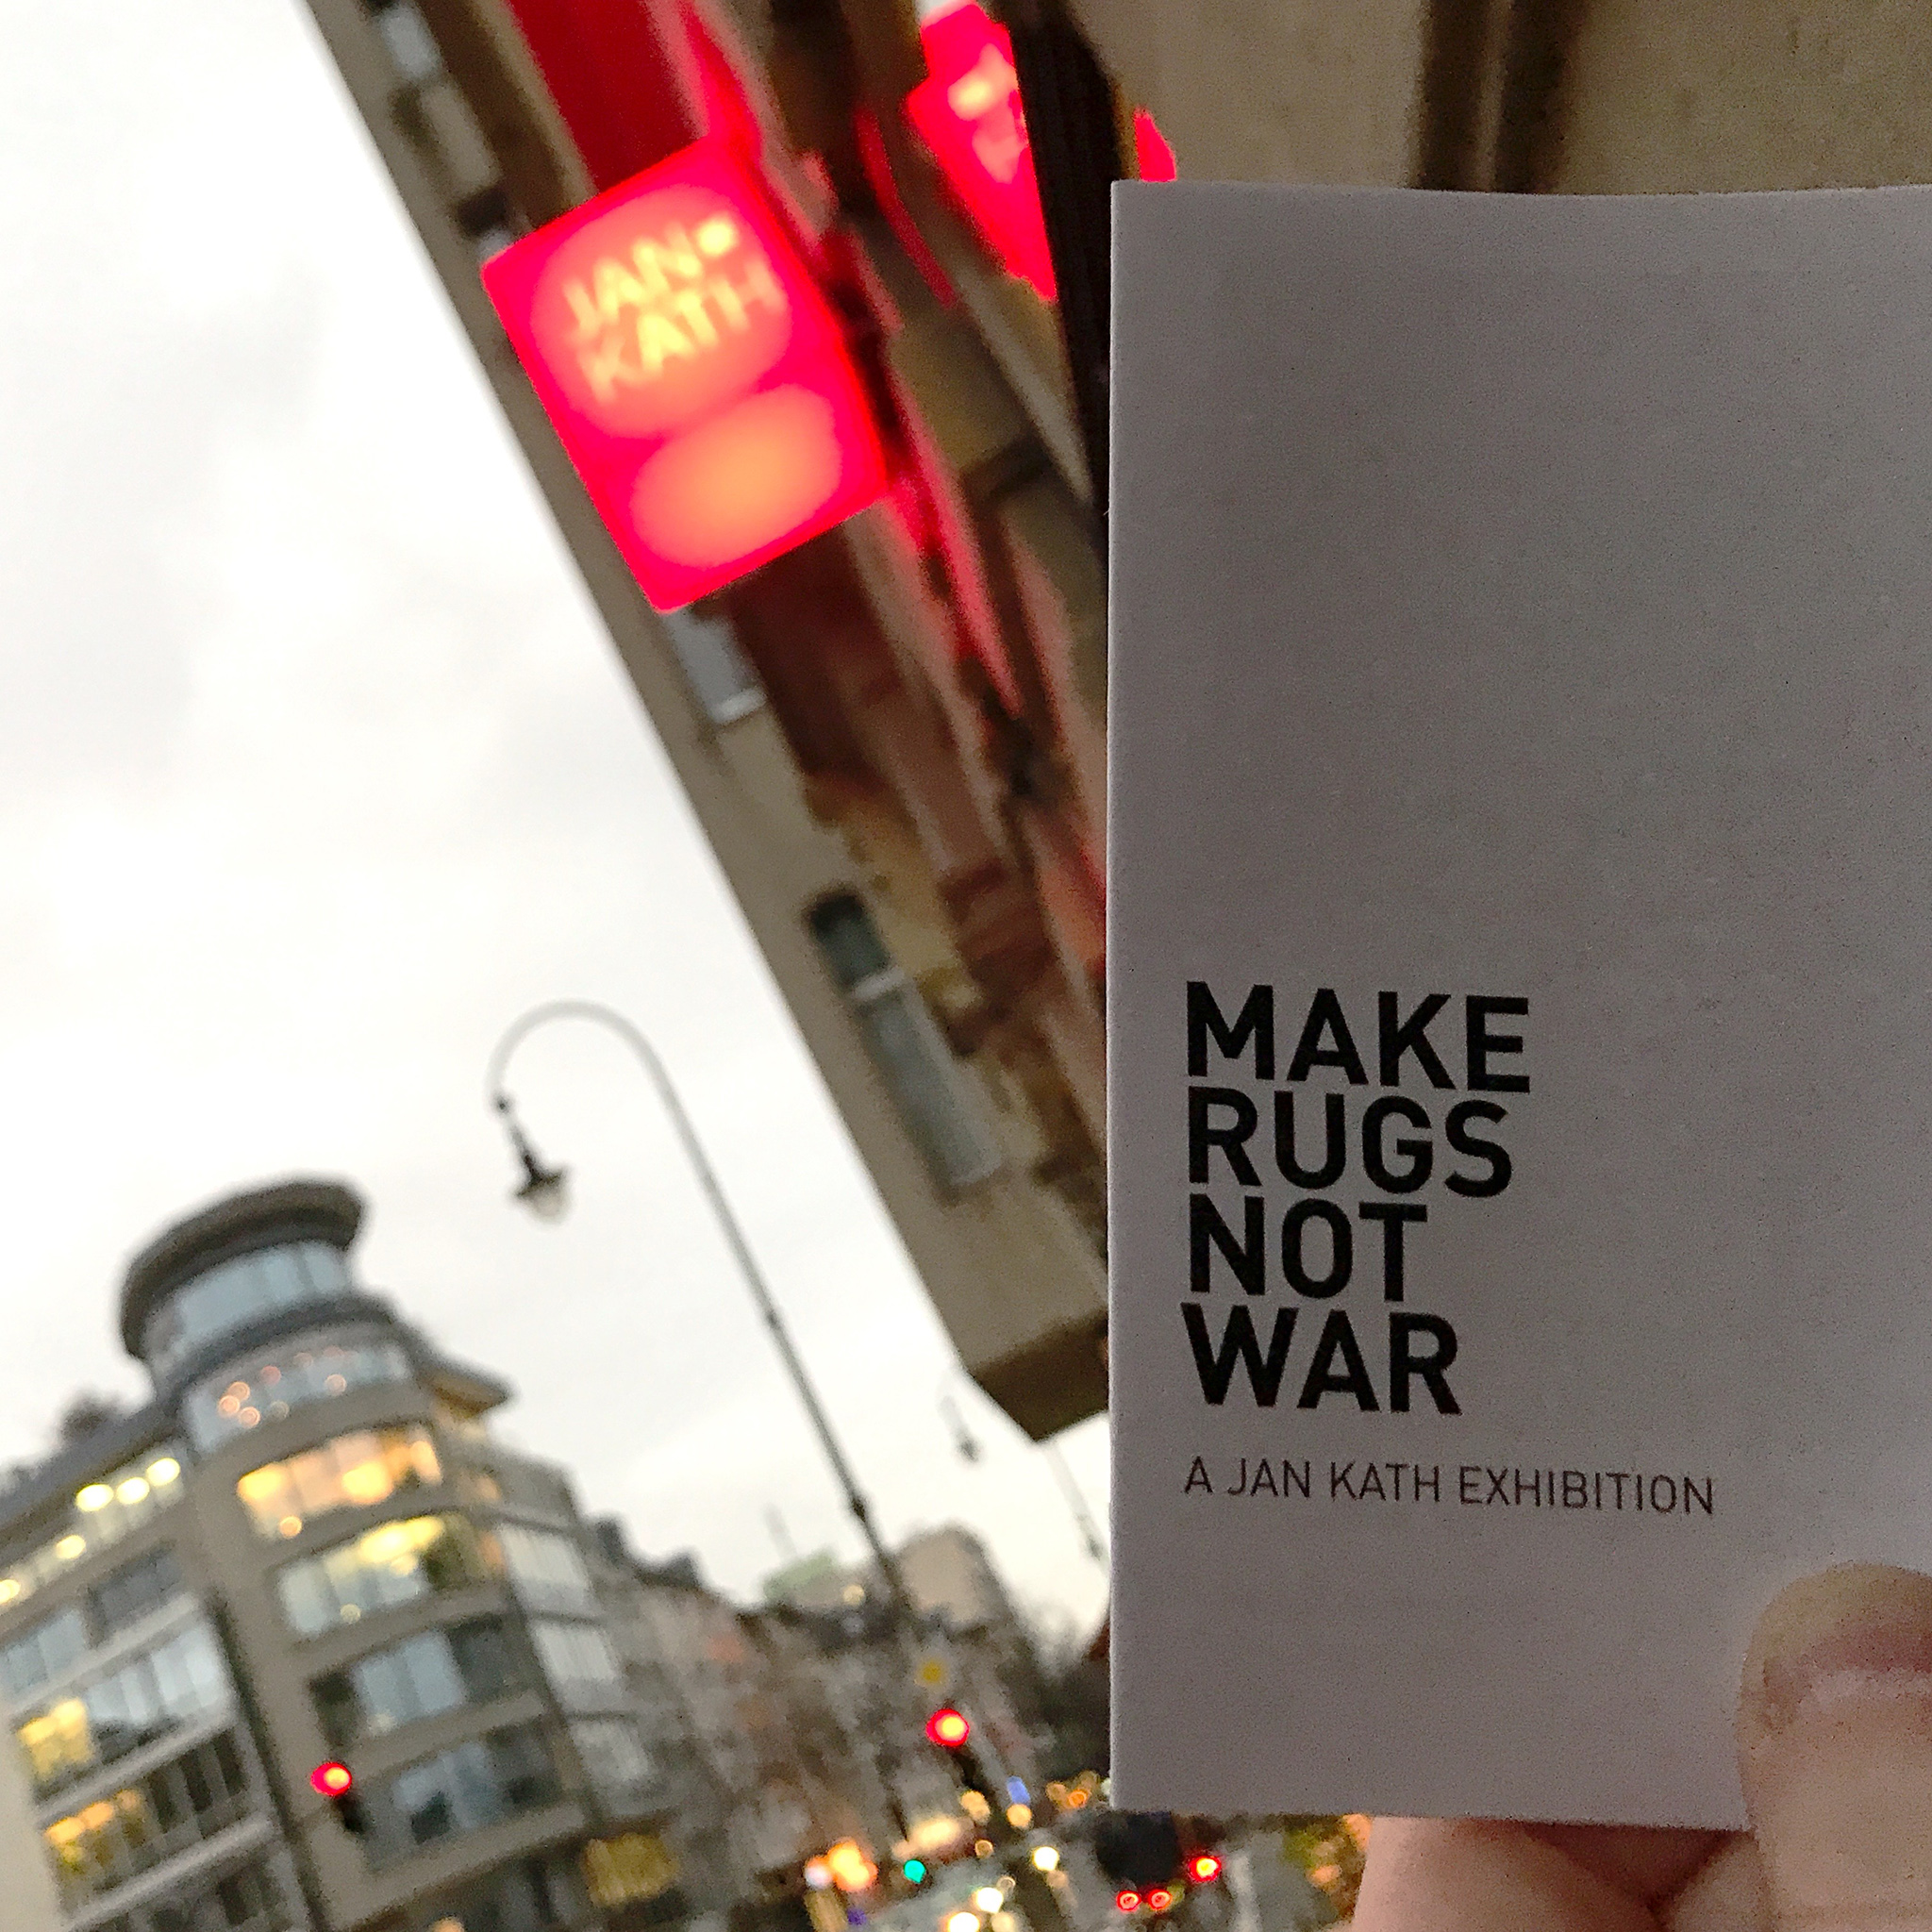 Opening night of the 'Make Rugs Not War' exhibition at Jan Kath Köln by Nyhues -Contemporary Art Rugs. The cover of the pamphlet distributed during the vernissage is shown. | Photograph by The Ruggist.